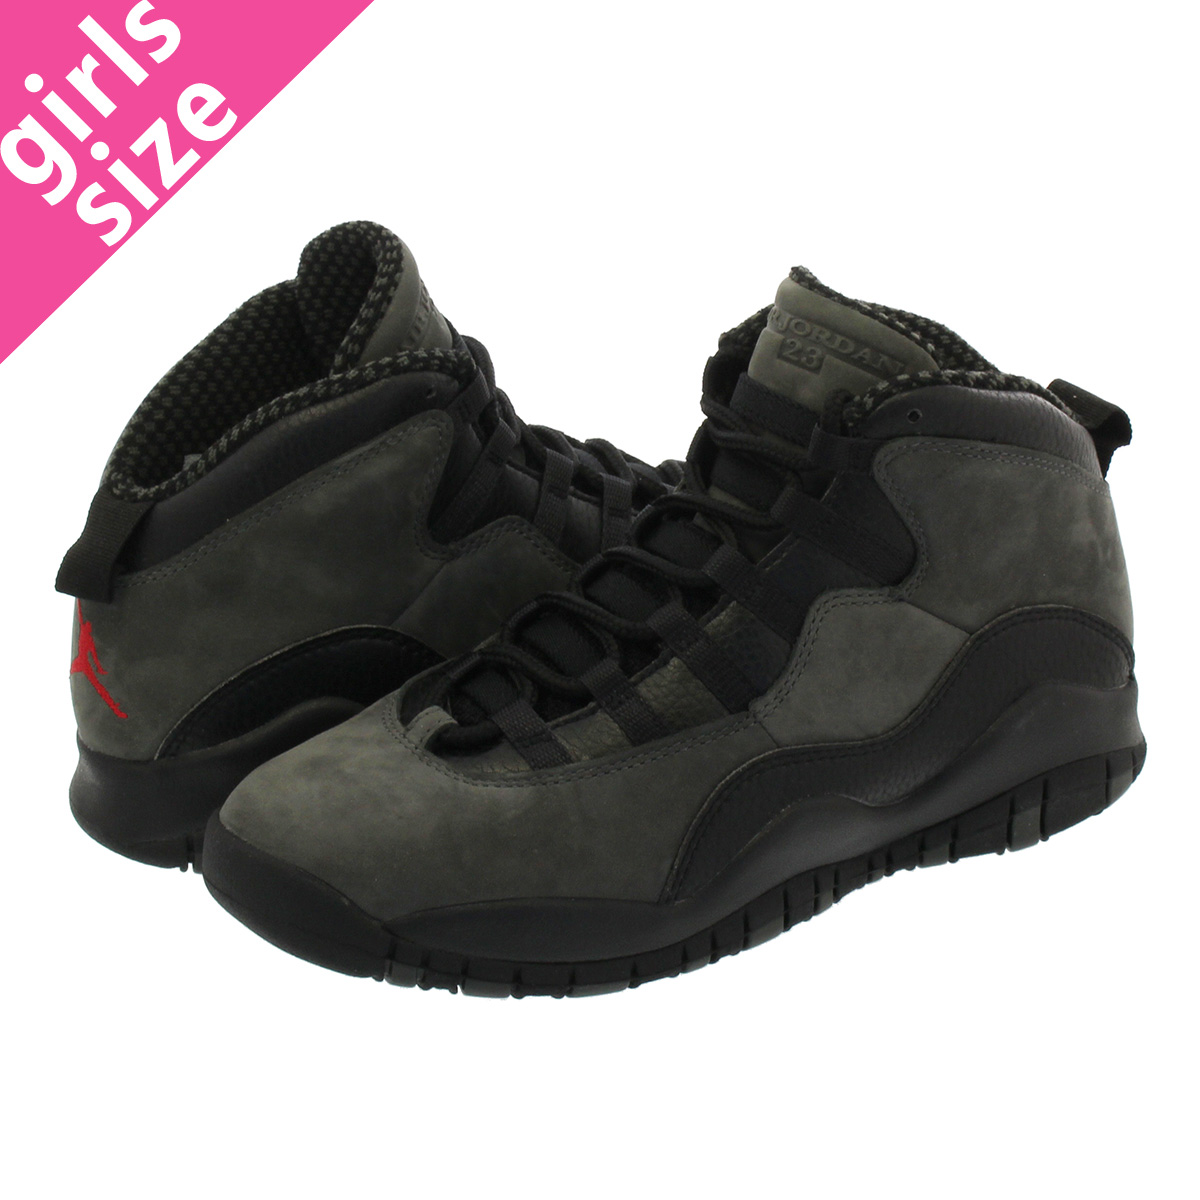 8404cde943e982 NIKE AIR JORDAN 10 RETRO BG Nike Air Jordan 10 nostalgic BG DARK  SHADOW TRUE RED BLACK 310